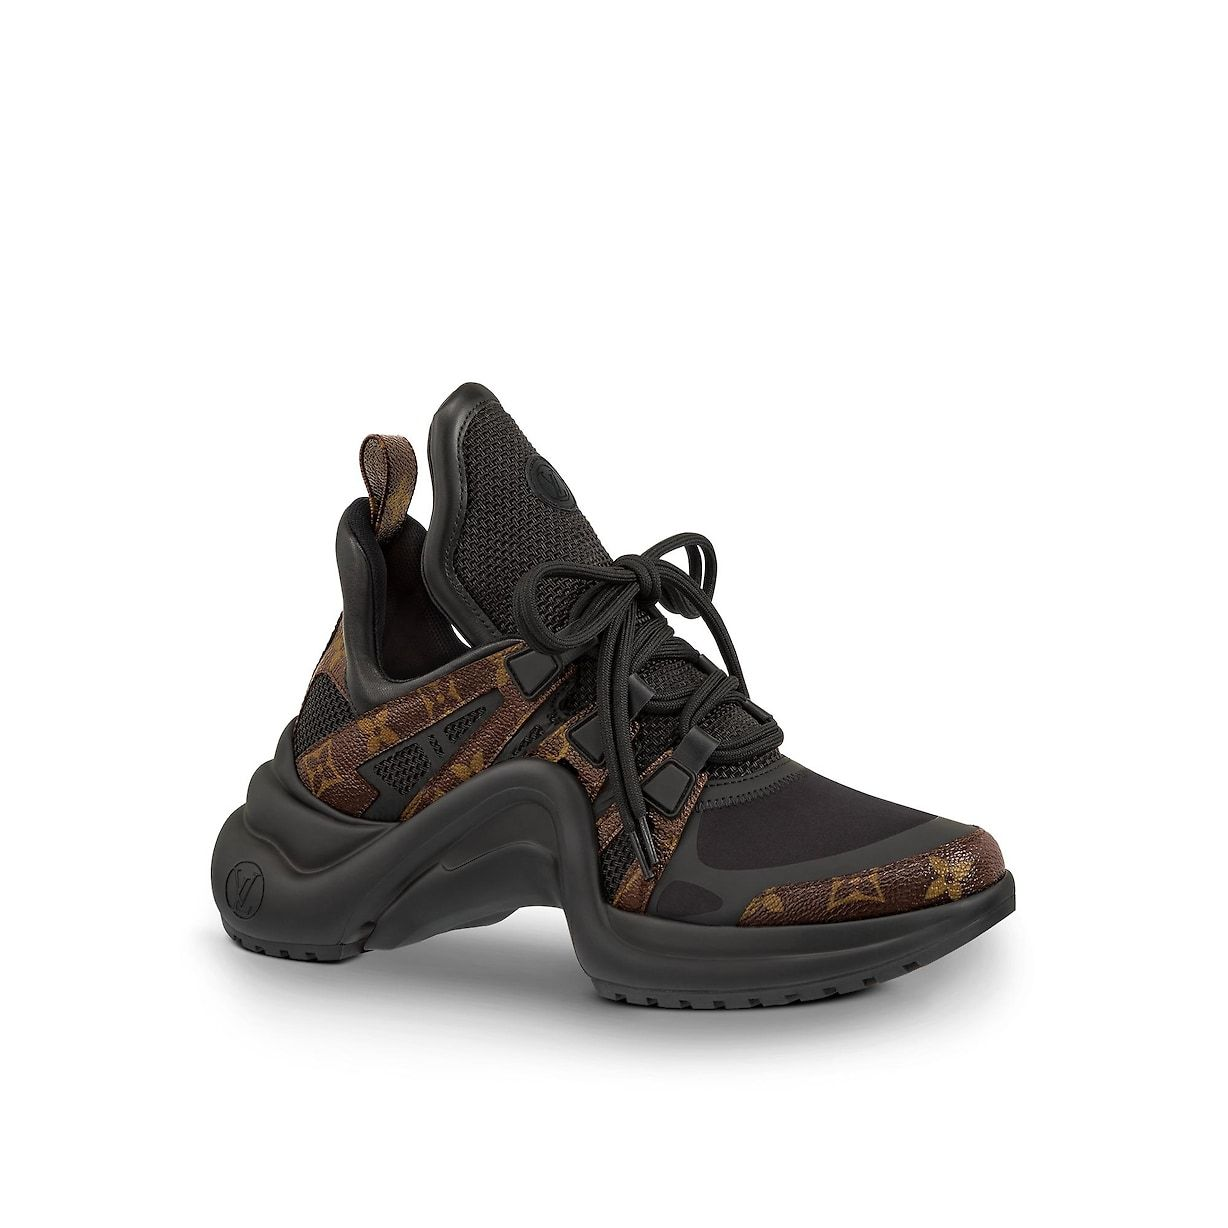 cff2bb683ec7 SHOES ALL COLLECTIONS LV Archlight Sneaker